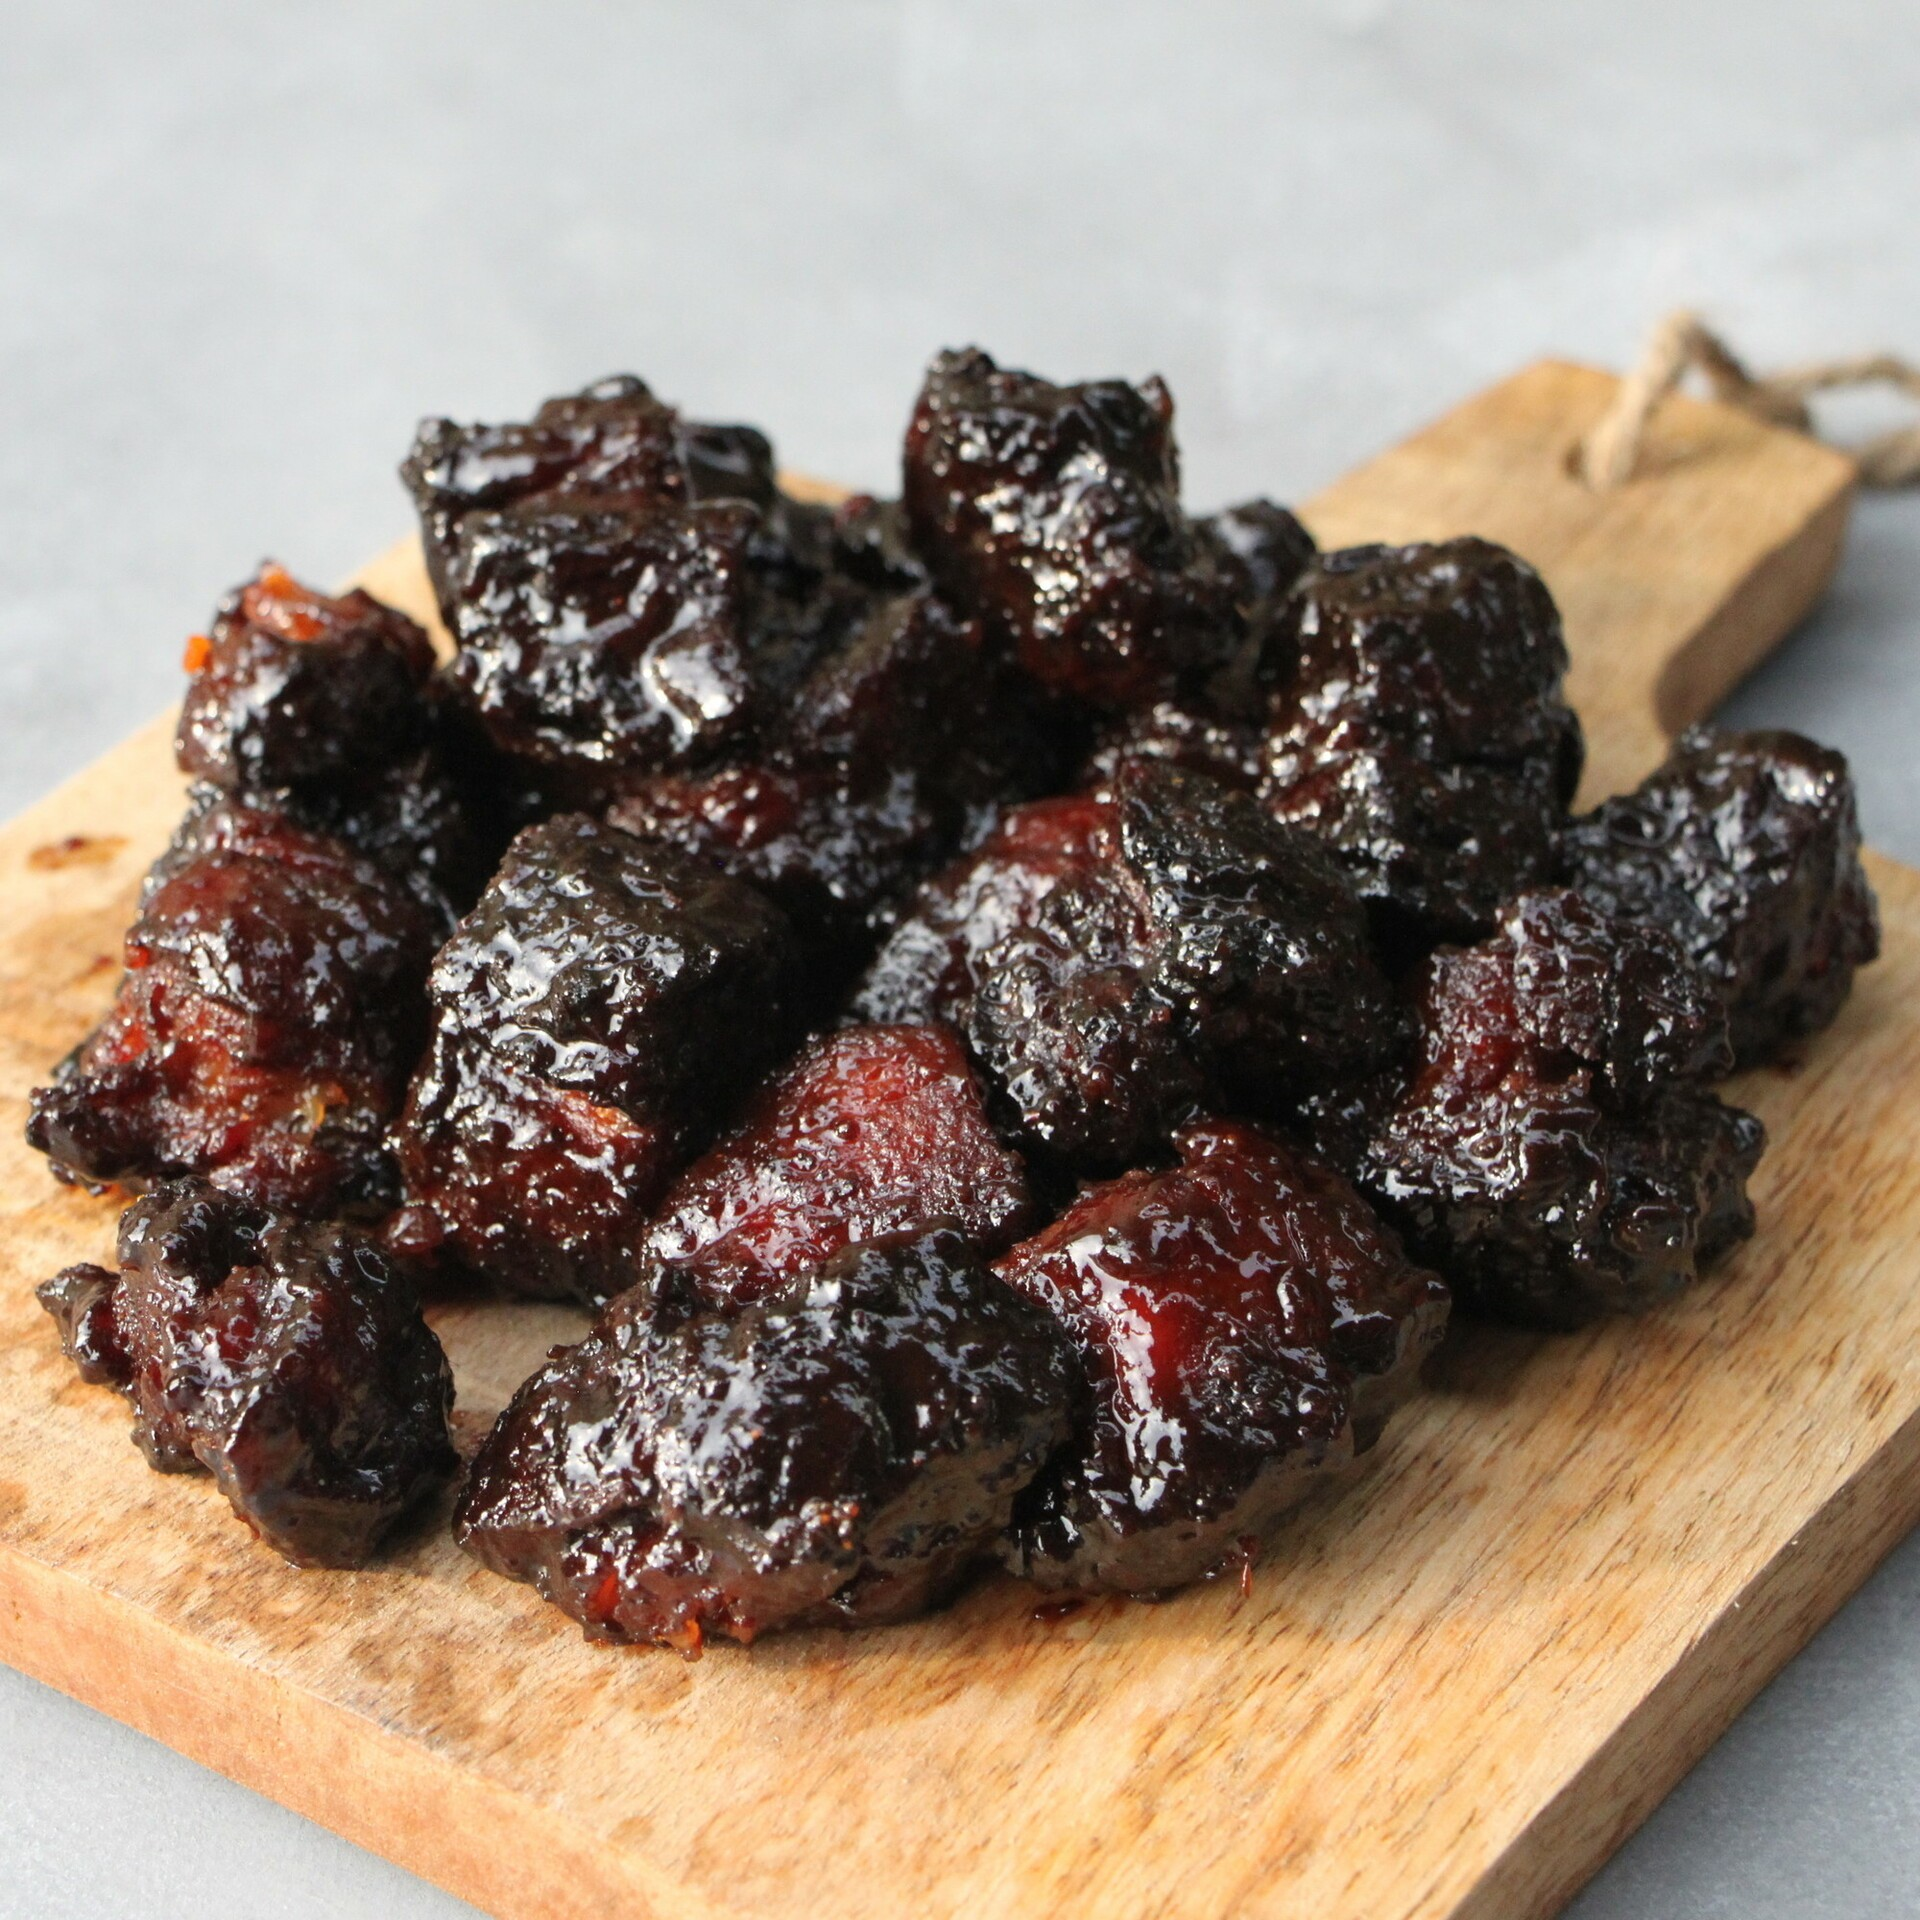 Pork Belly Burnt Ends van Livar buikspek